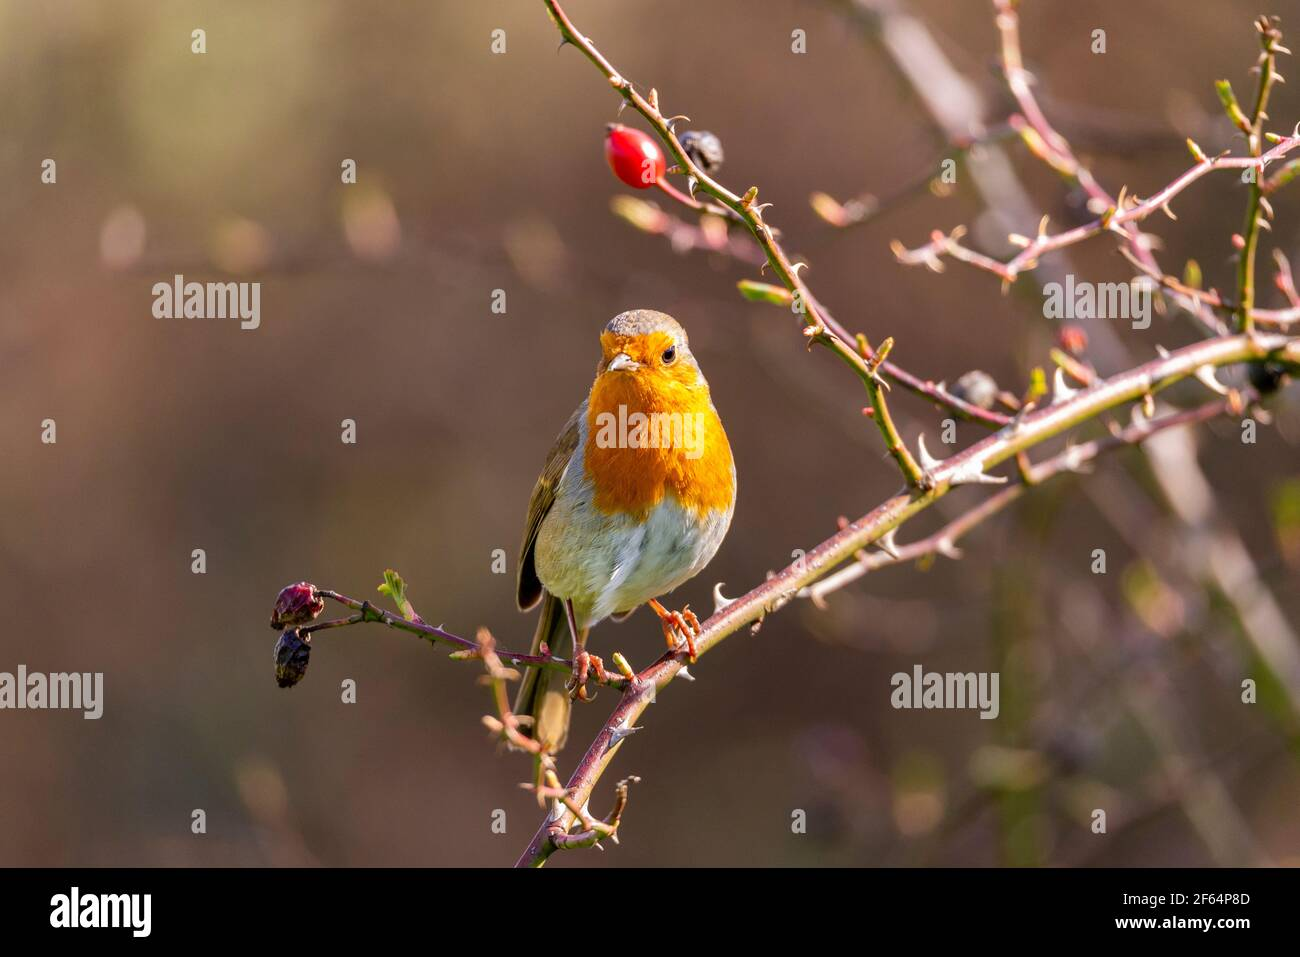 robin-redbreast-on-a-thorn-bush-with-a-red-berry-european-robin-erithacus-rubecula-sitting-on-branch-with-thorns-woodland-in-hounslow-london-uk-2F64P8D.jpg